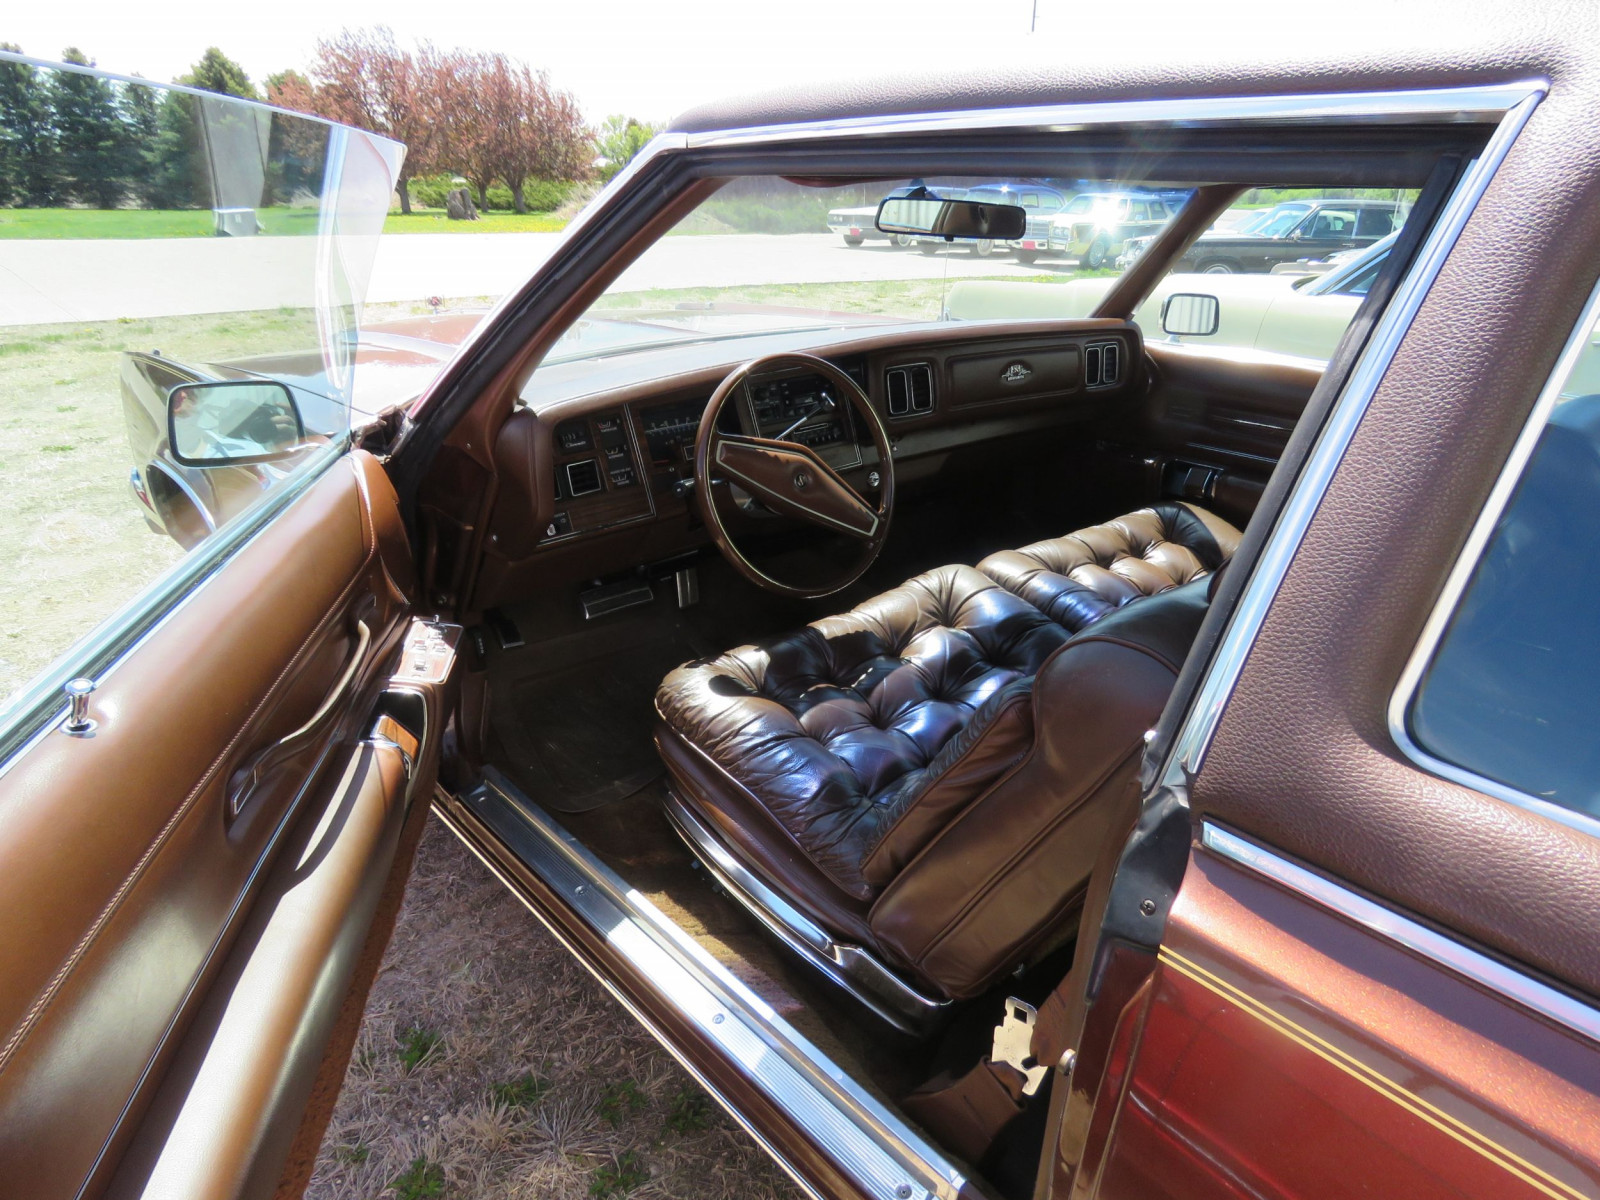 1977 Chrysler New Yorker Brougham with ST. Regis package - Image 14